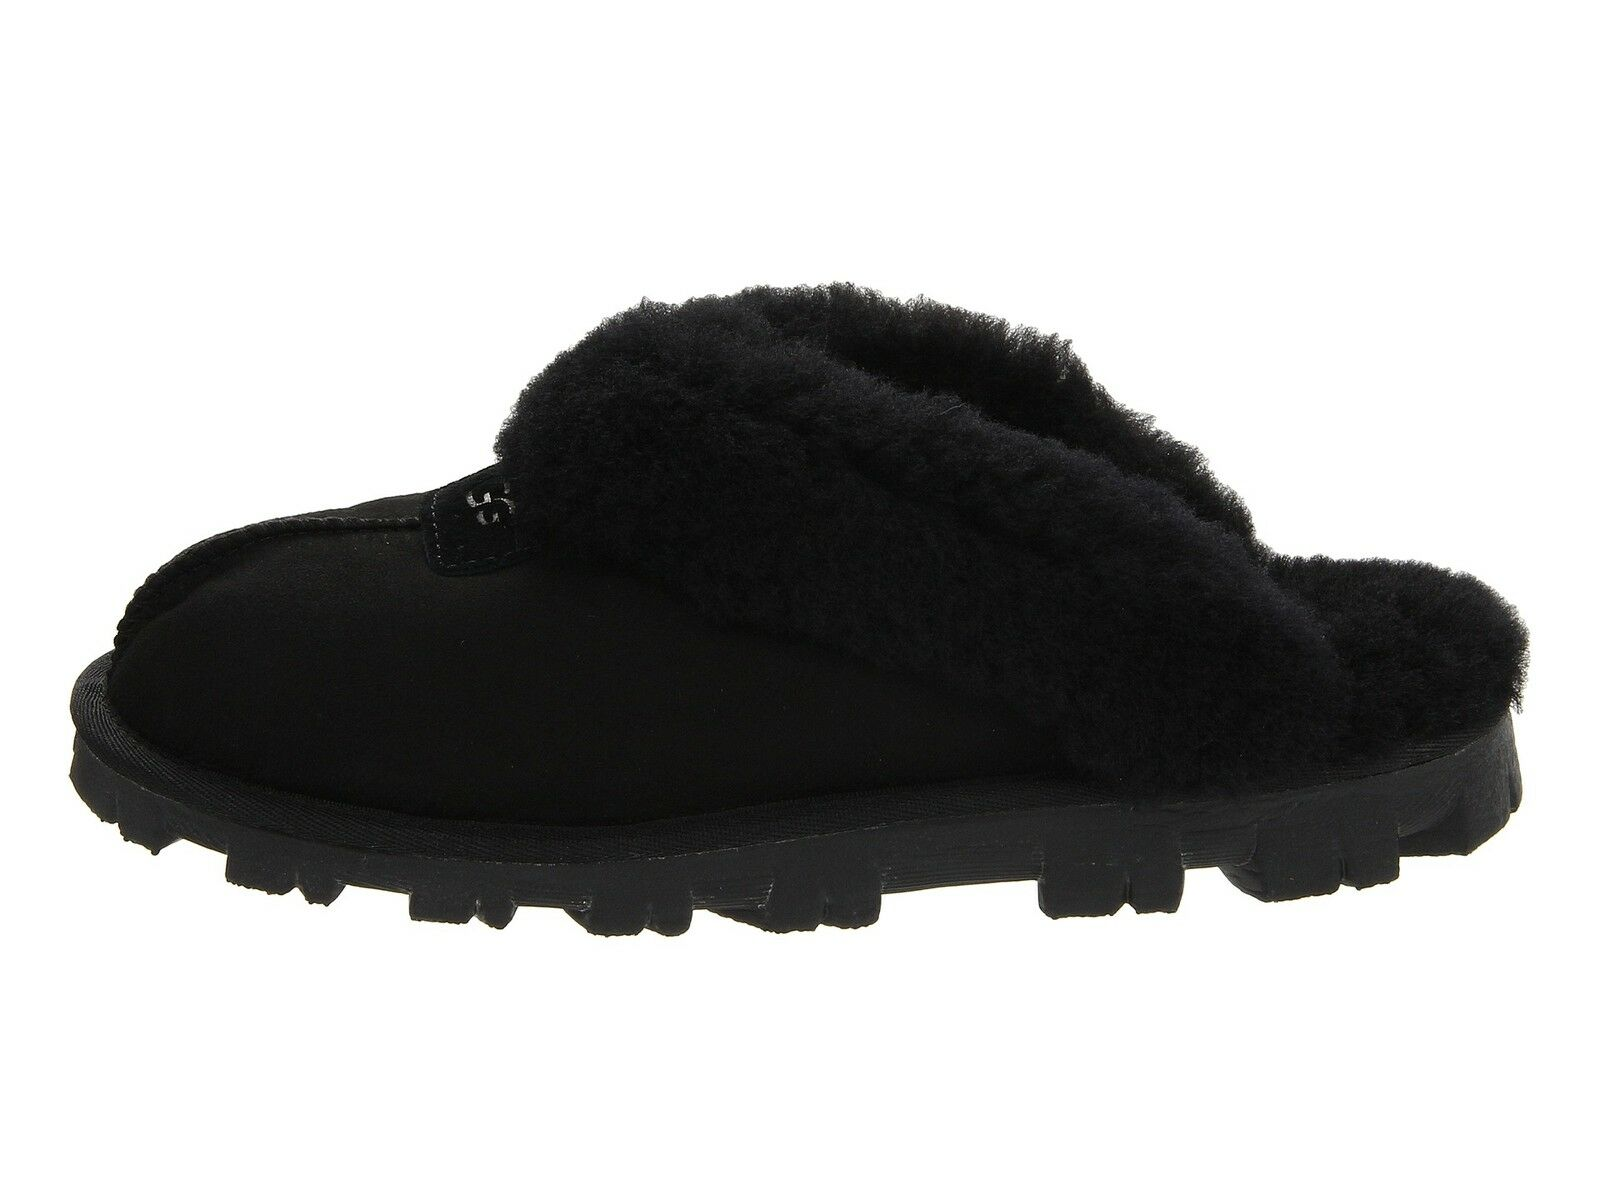 Women's Shoes UGG COQUETTE Sheepskin Slippers 5125 BLACK 5 6 7 8 9 10 11 *New* 1